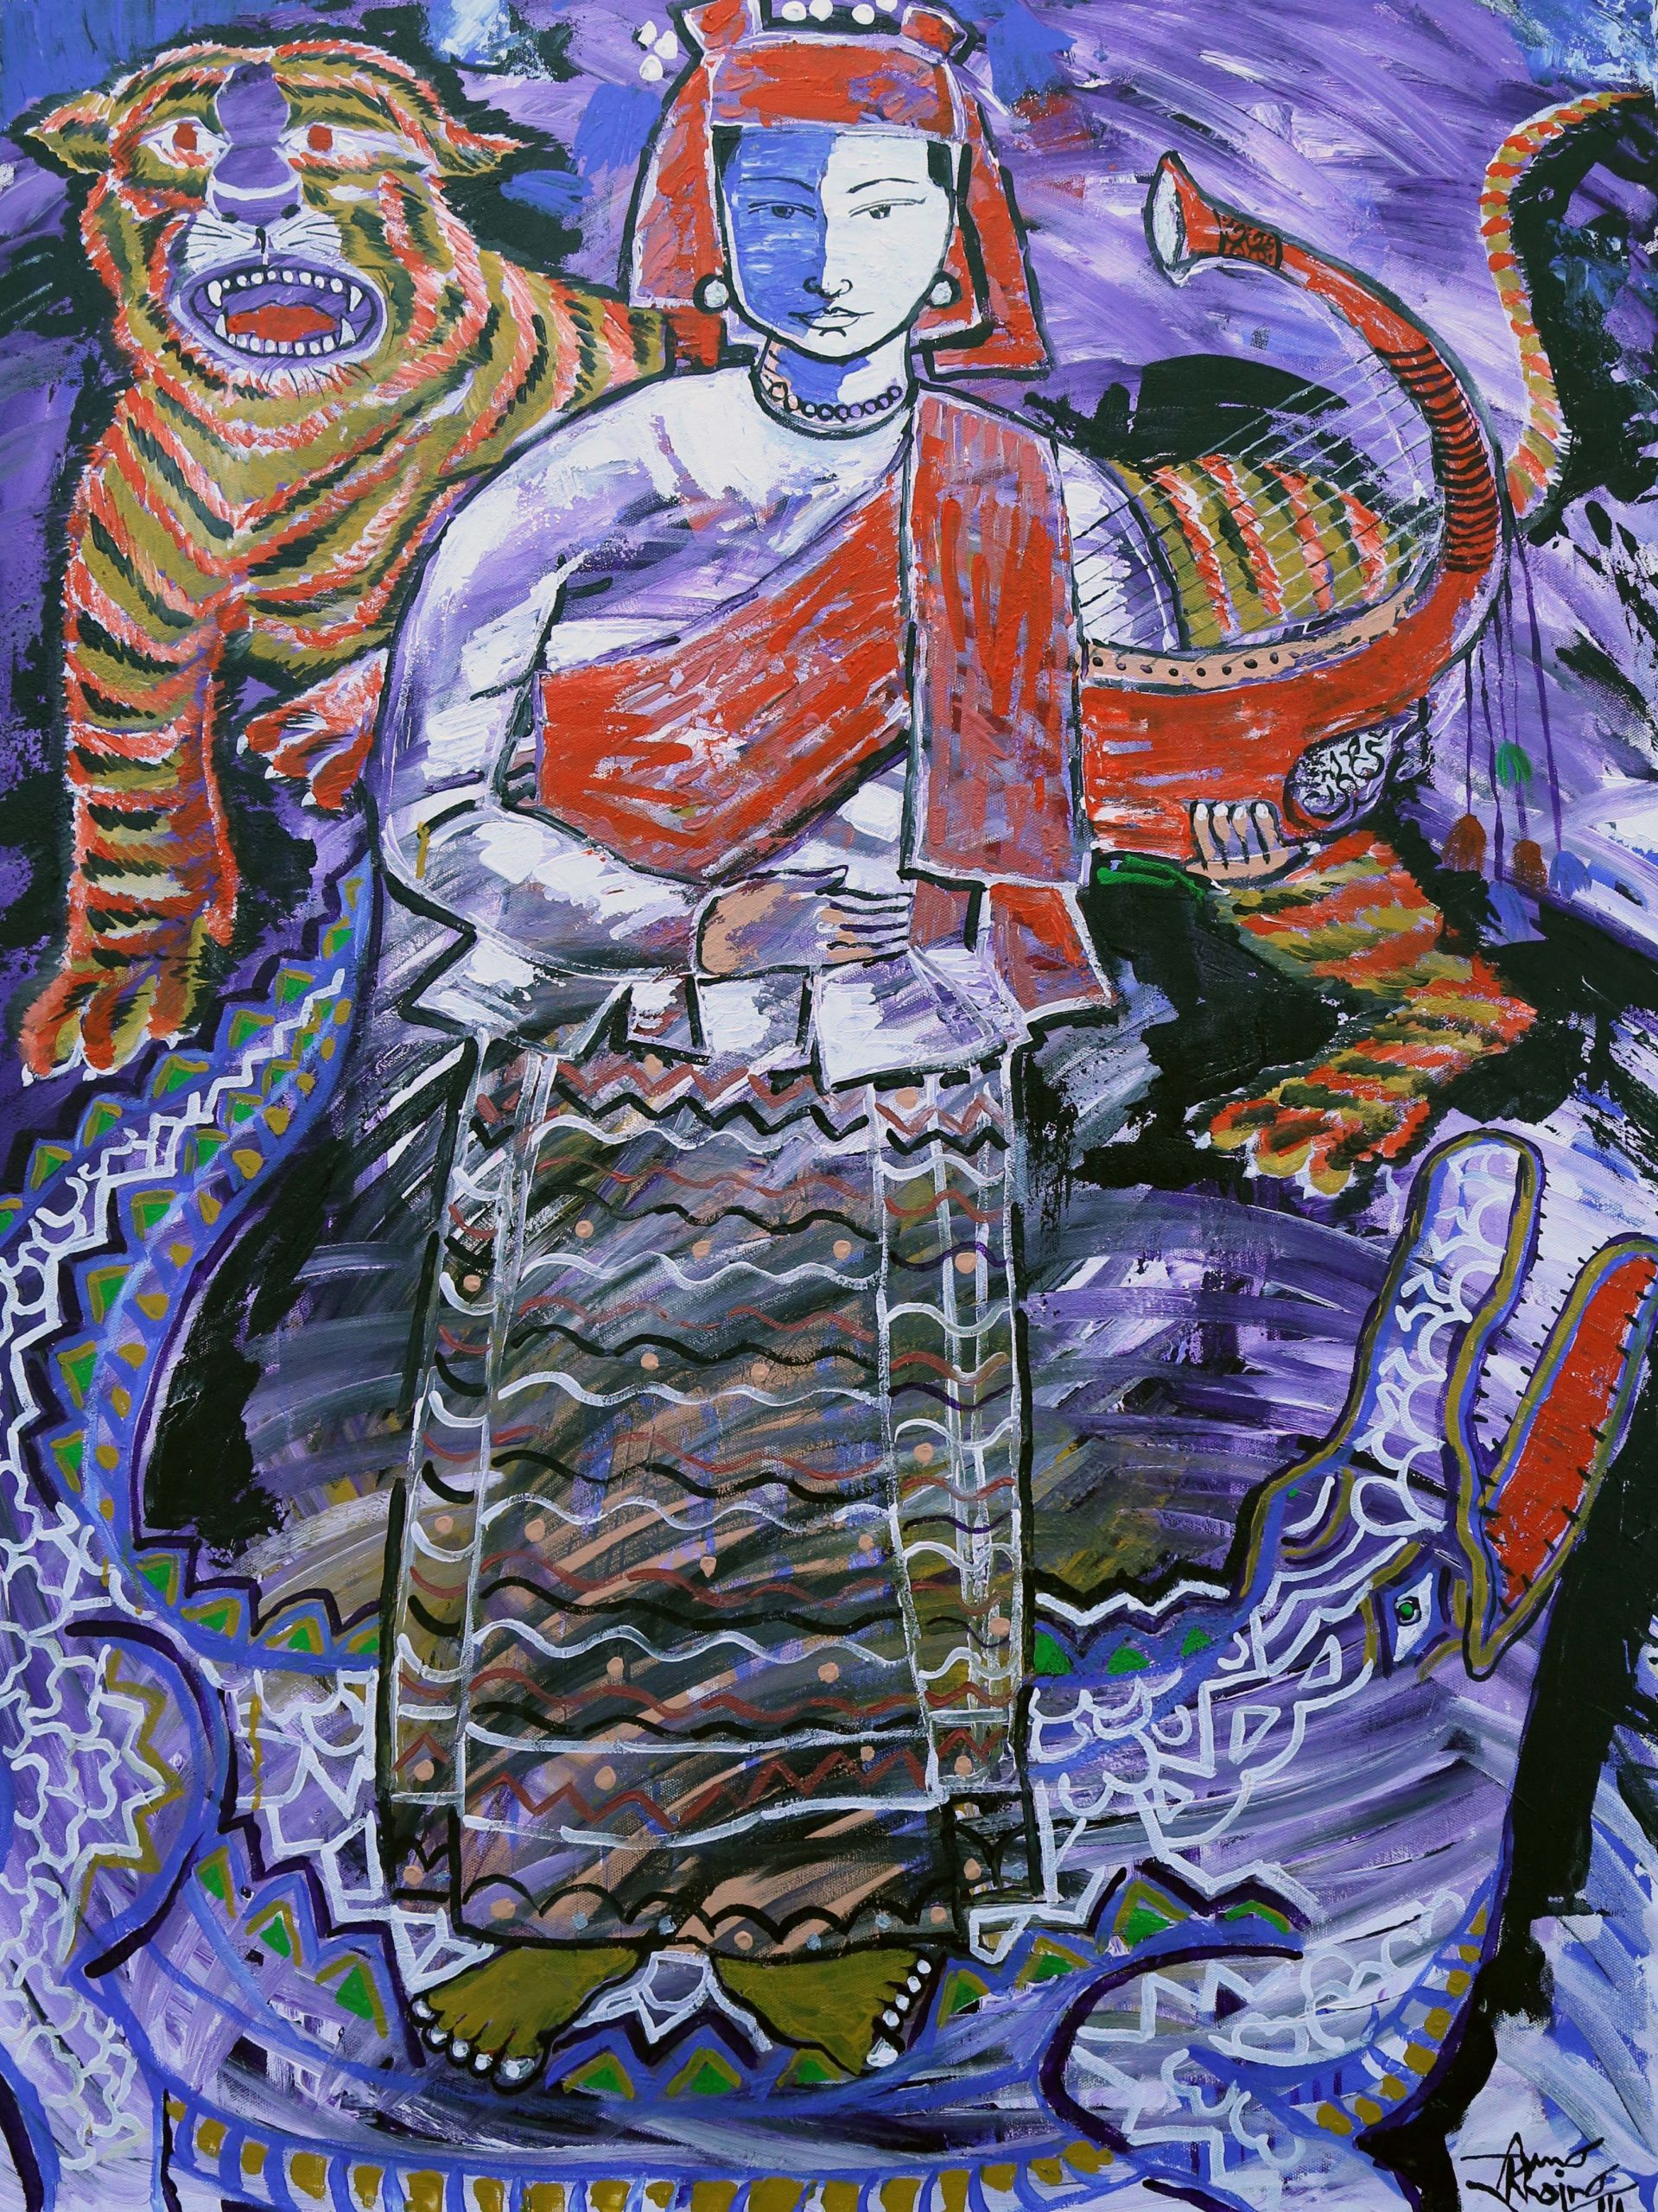 Painting of a woman with a tiger